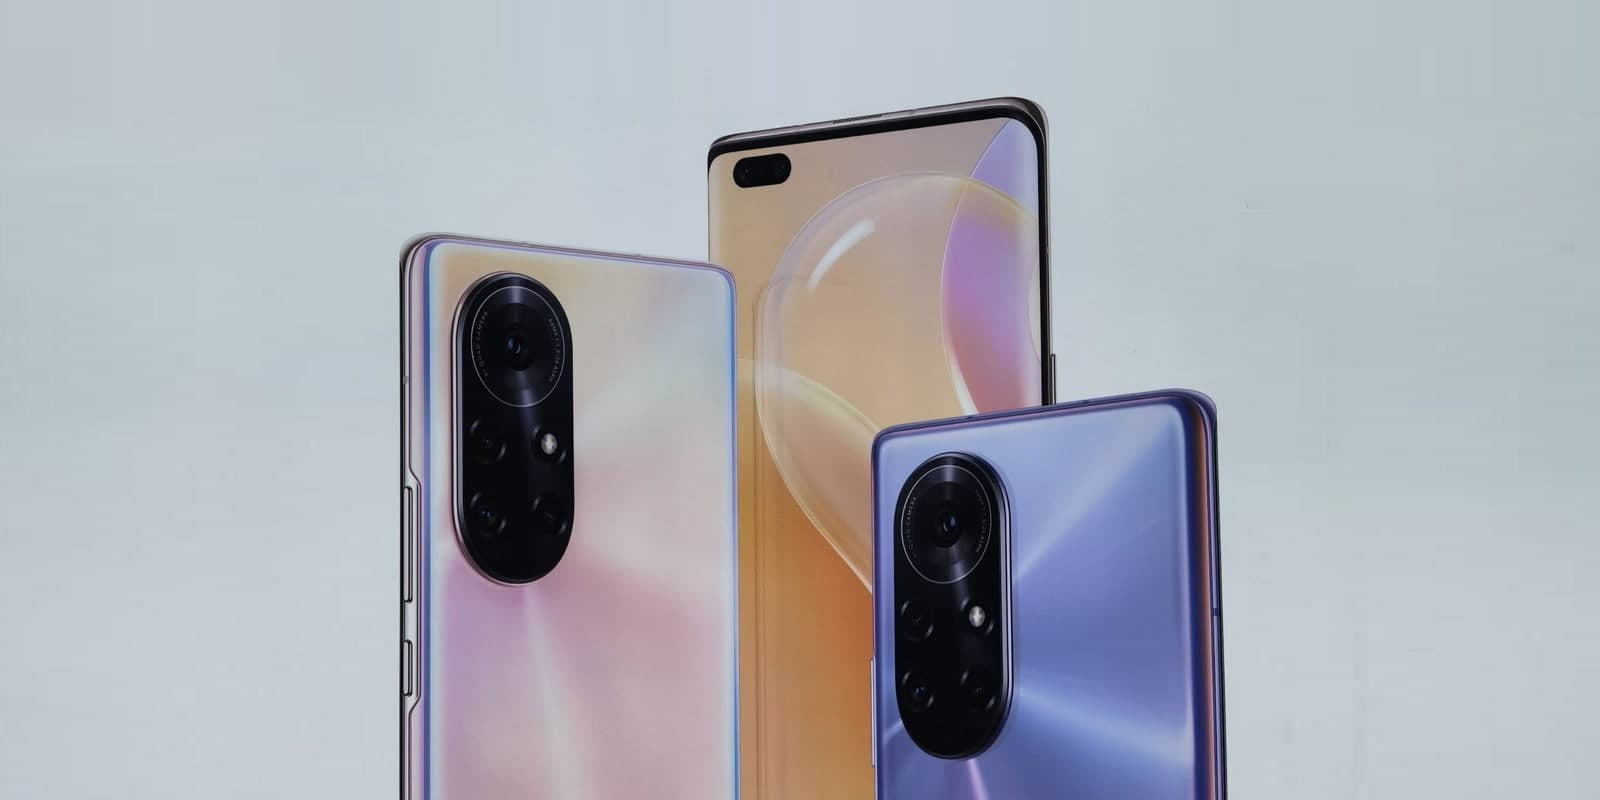 Huawei is launching Nova 8 and Nova 8 Pro on December 23rd